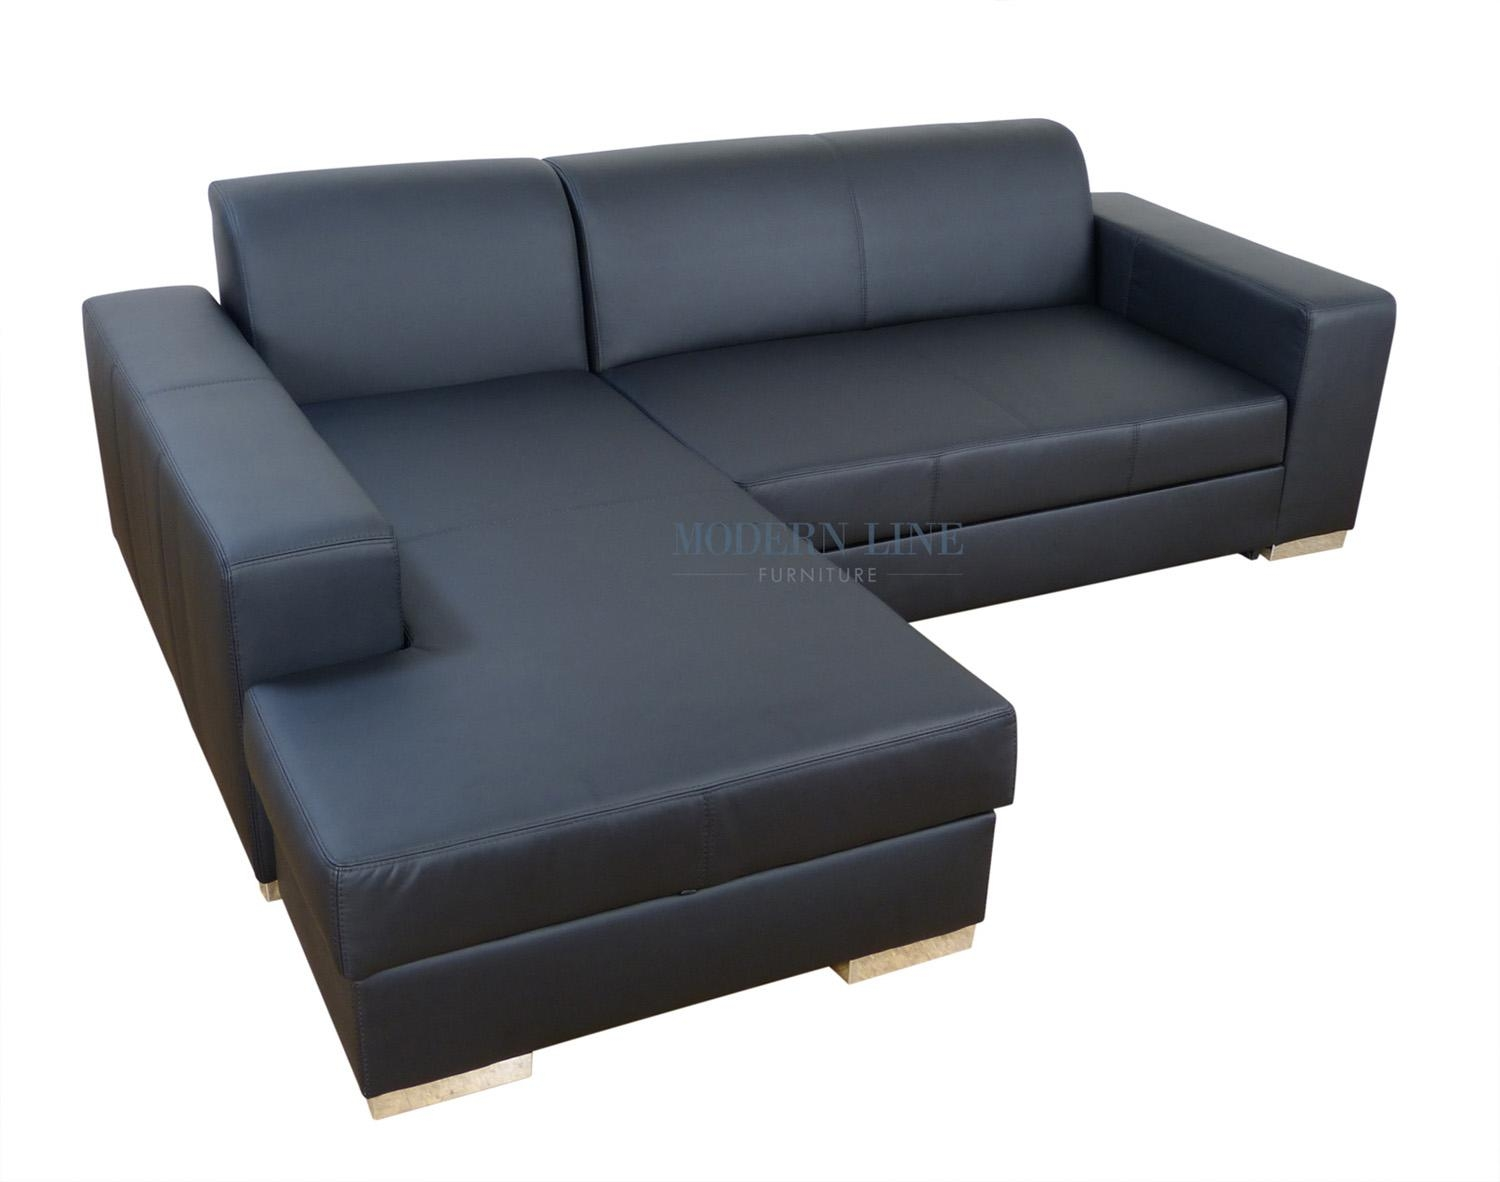 Furniture: Amusing Furniture Decorated L Shaped Sleeper Sofa For Throughout Black Leather Convertible Sofas (Image 10 of 20)